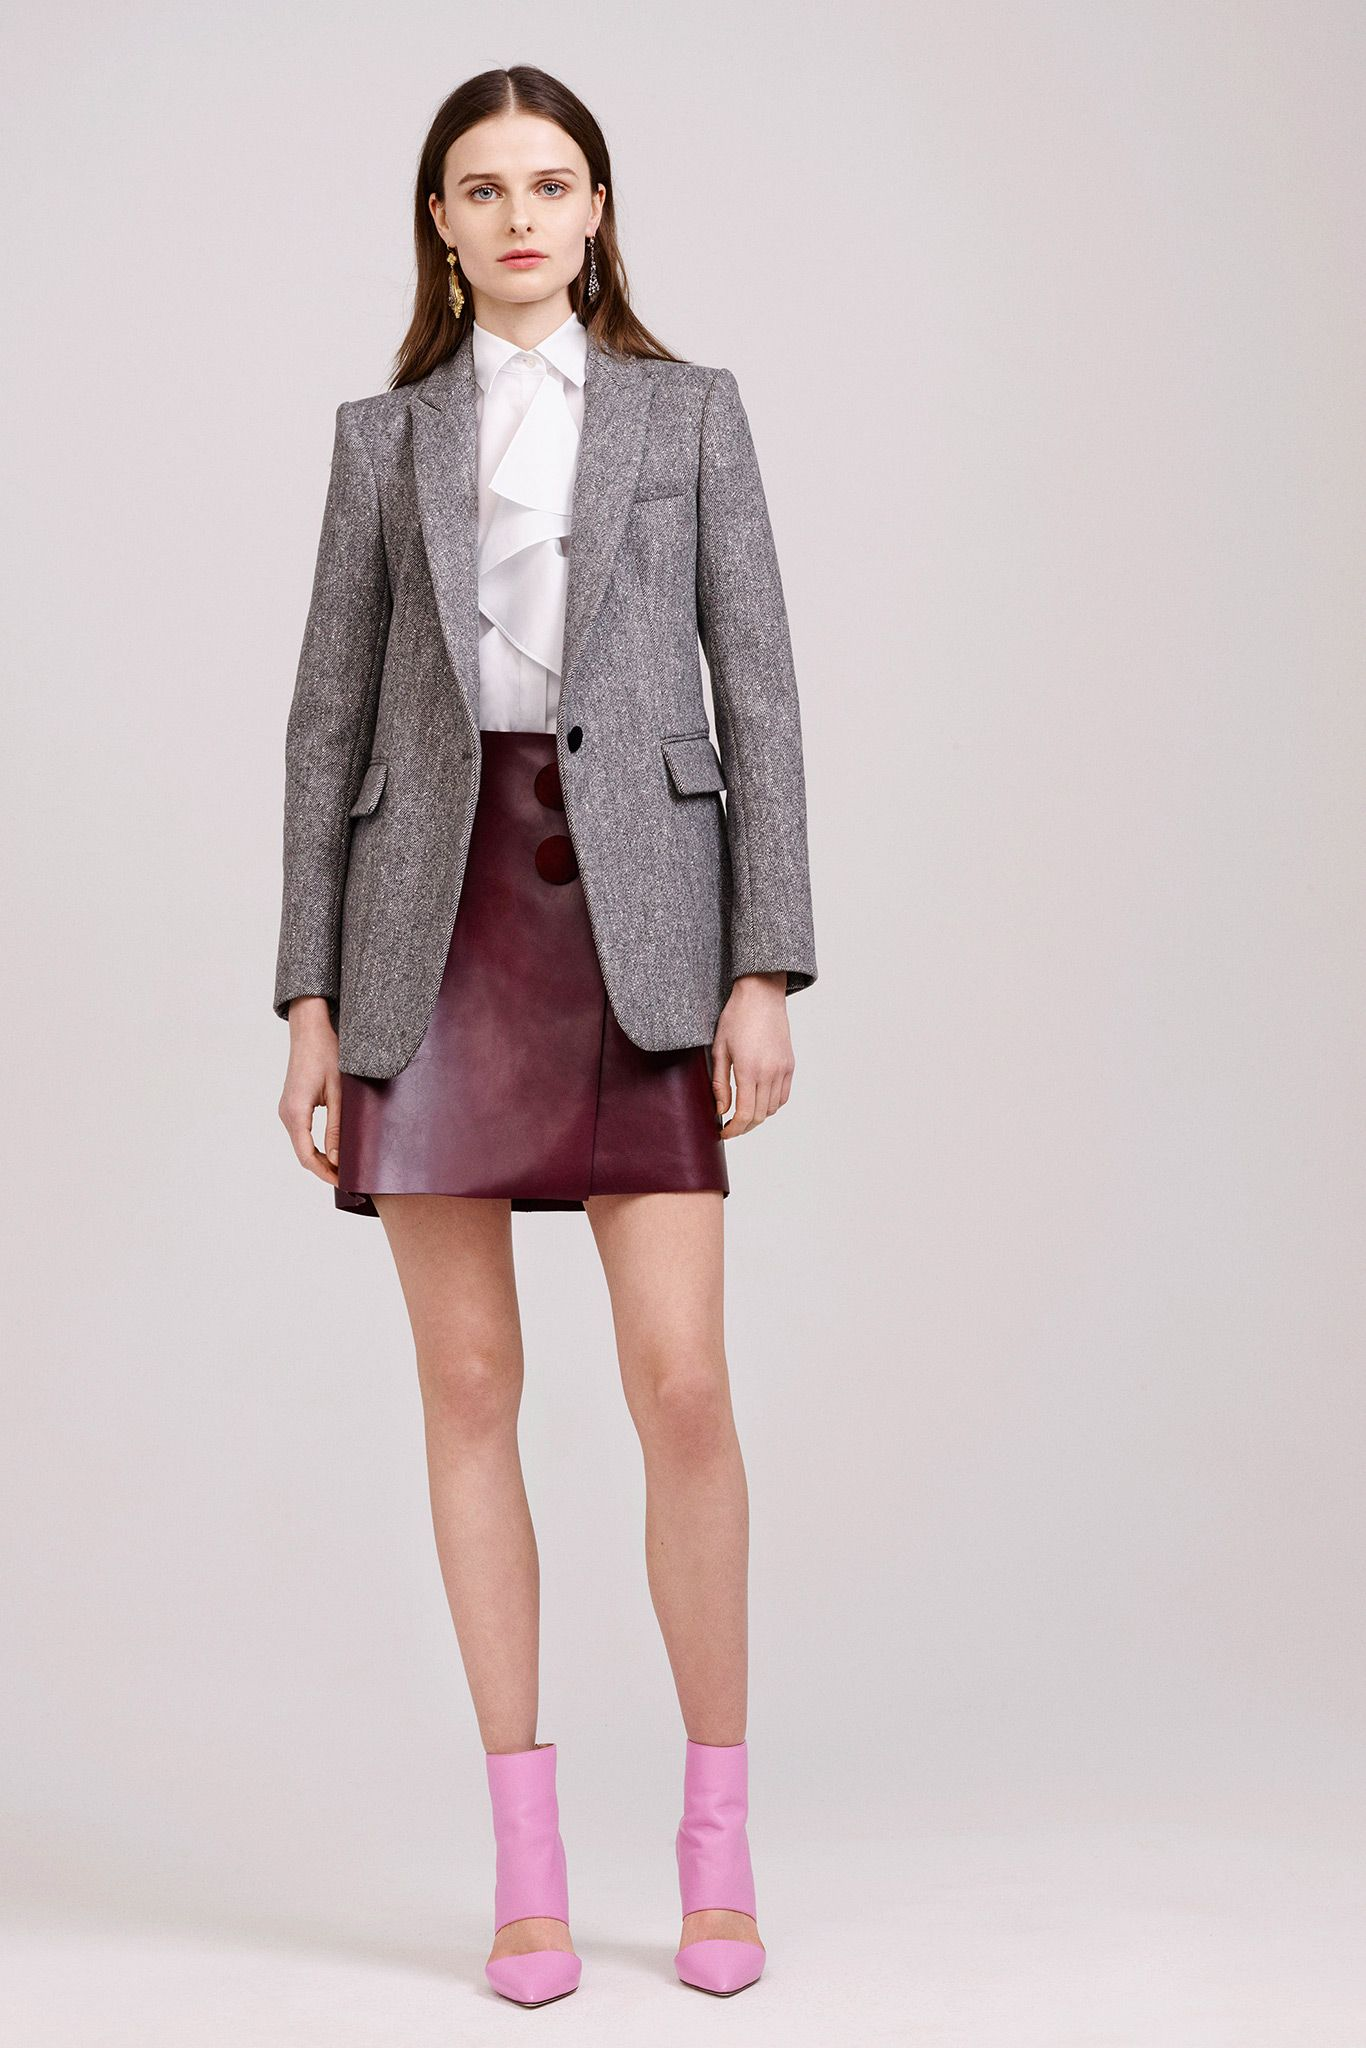 Adam Lippes Fall 2015 Ready-to-Wear - Collection - Gallery - Style.com